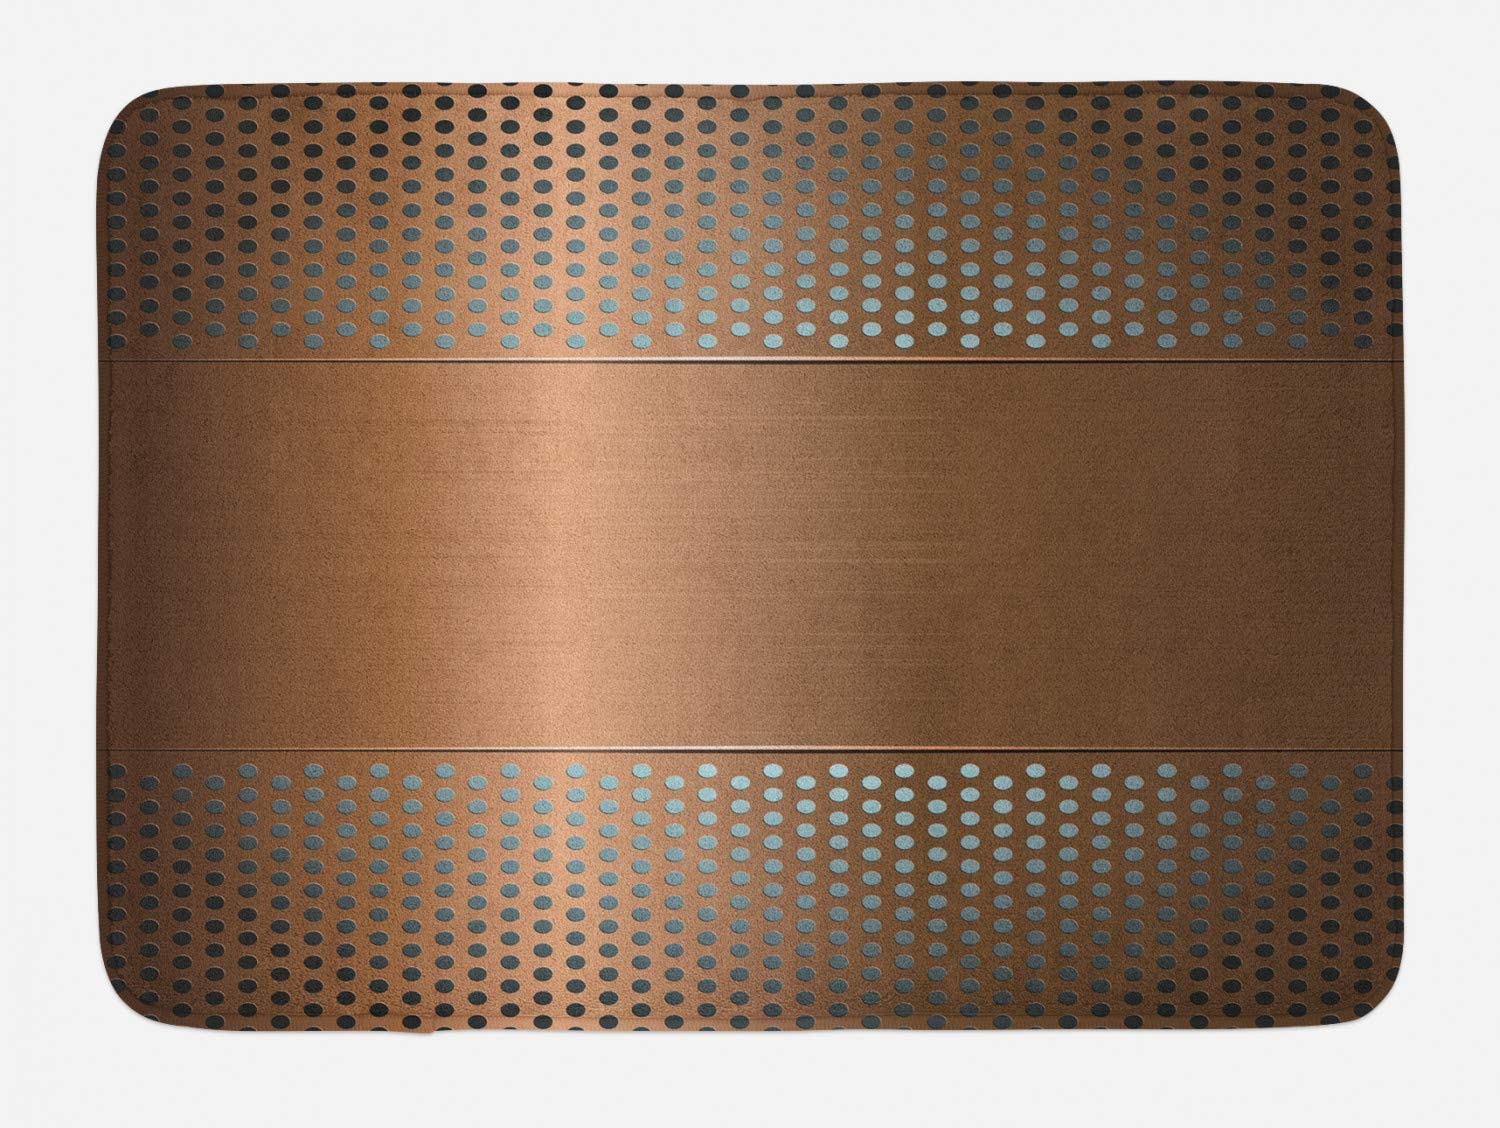 Ambesonne Industrial Bath Mat, Perforated Grid Plate Steel Dots Illustration Futuristic Technology Theme, Plush Bathroom Decor Mat with Non Slip Backing, 29.5